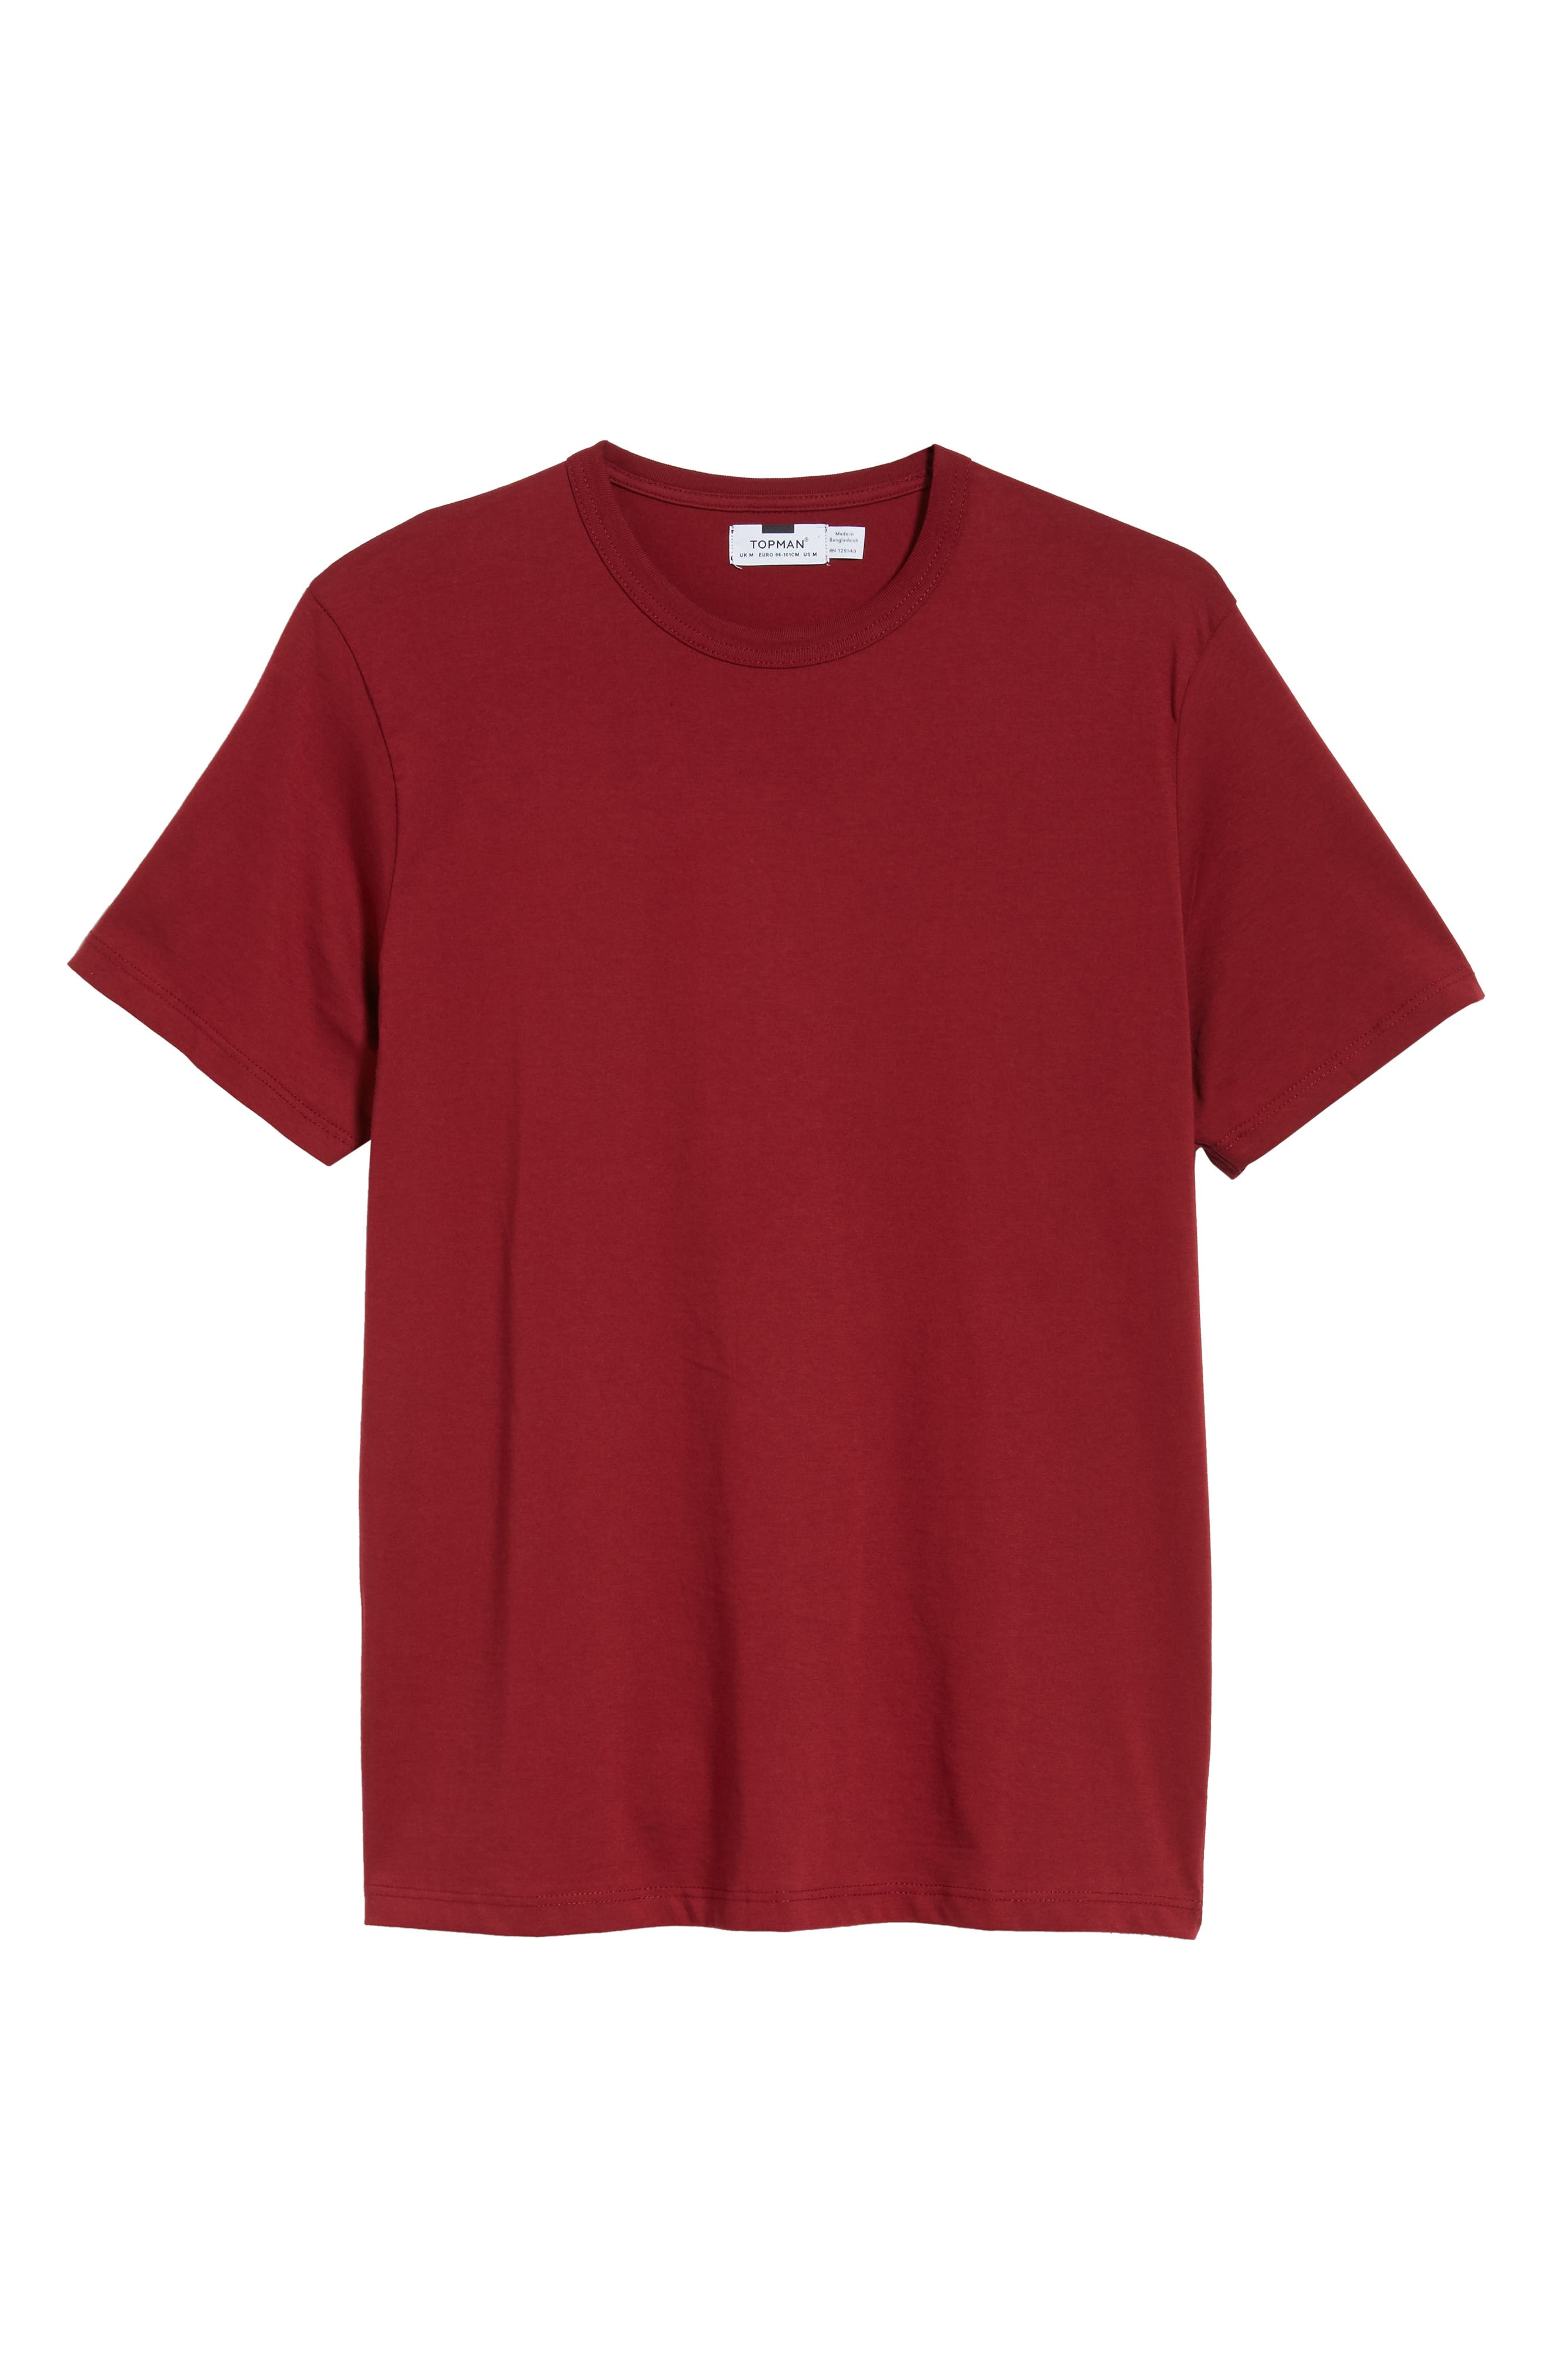 Bound Classic Crew T-Shirt,                             Alternate thumbnail 6, color,                             RED